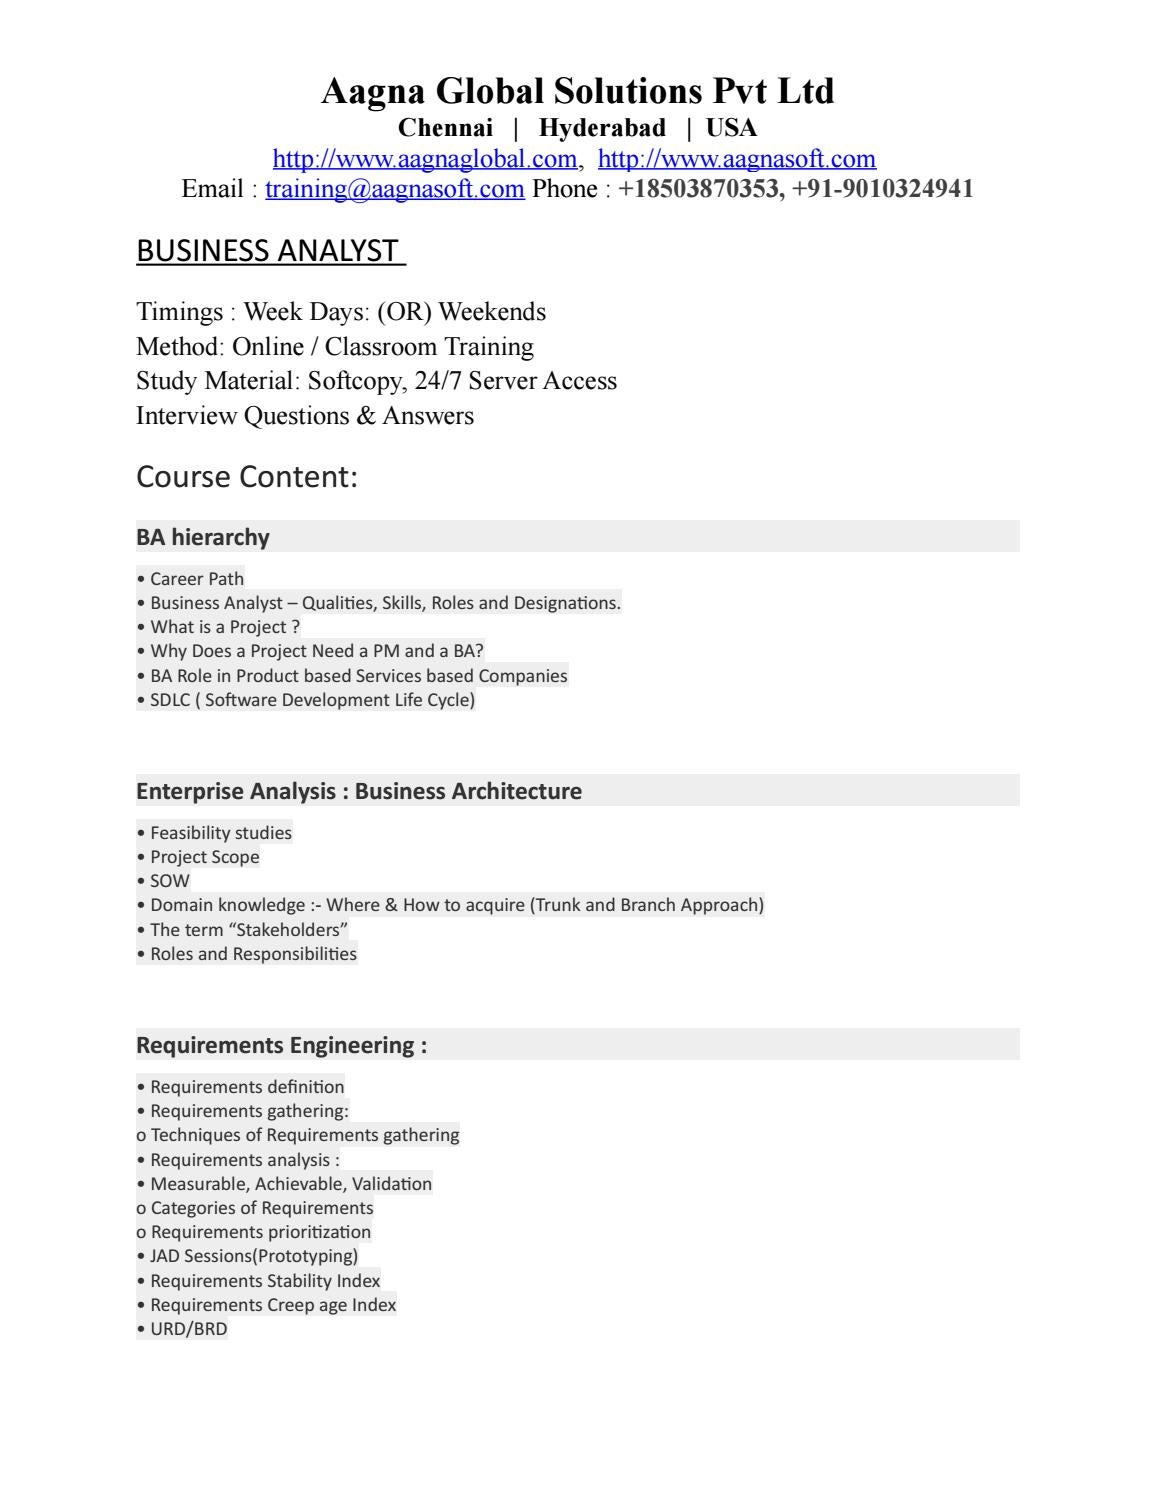 Business analyst courses content by aagnasoft2 - issuu